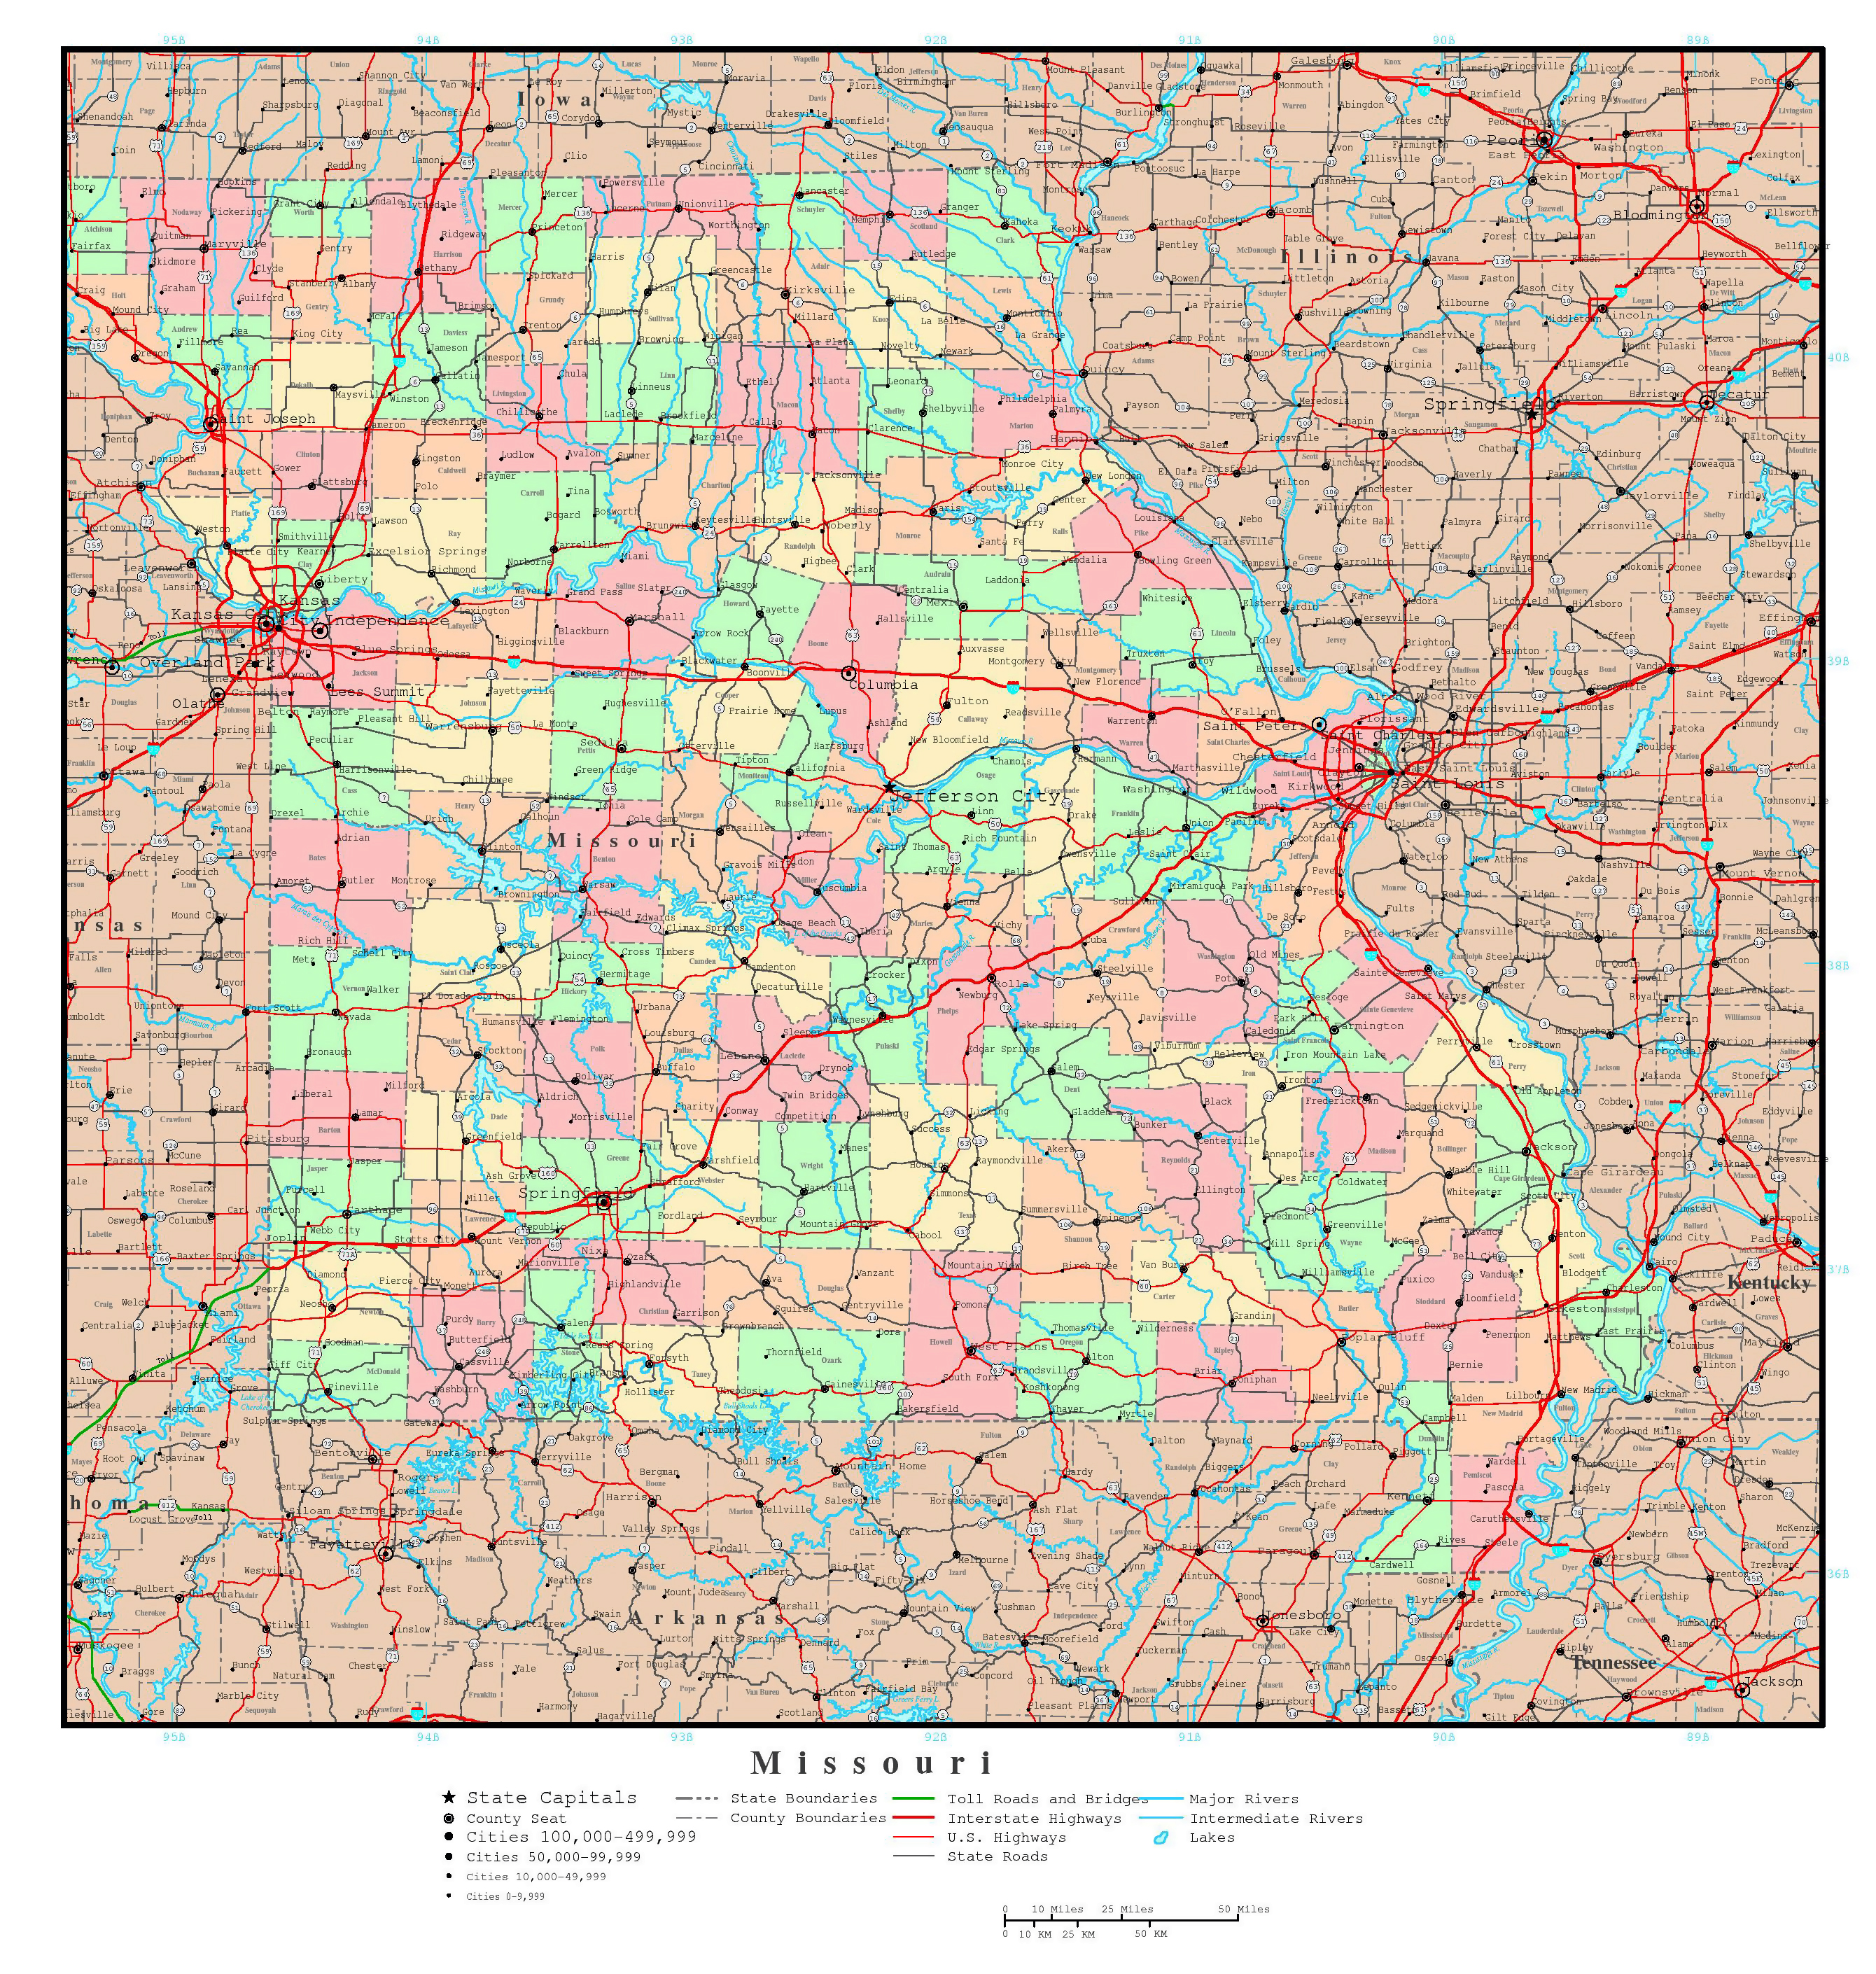 Large Detailed Administrative Map Of Missouri State With Roads - Missouri usa map